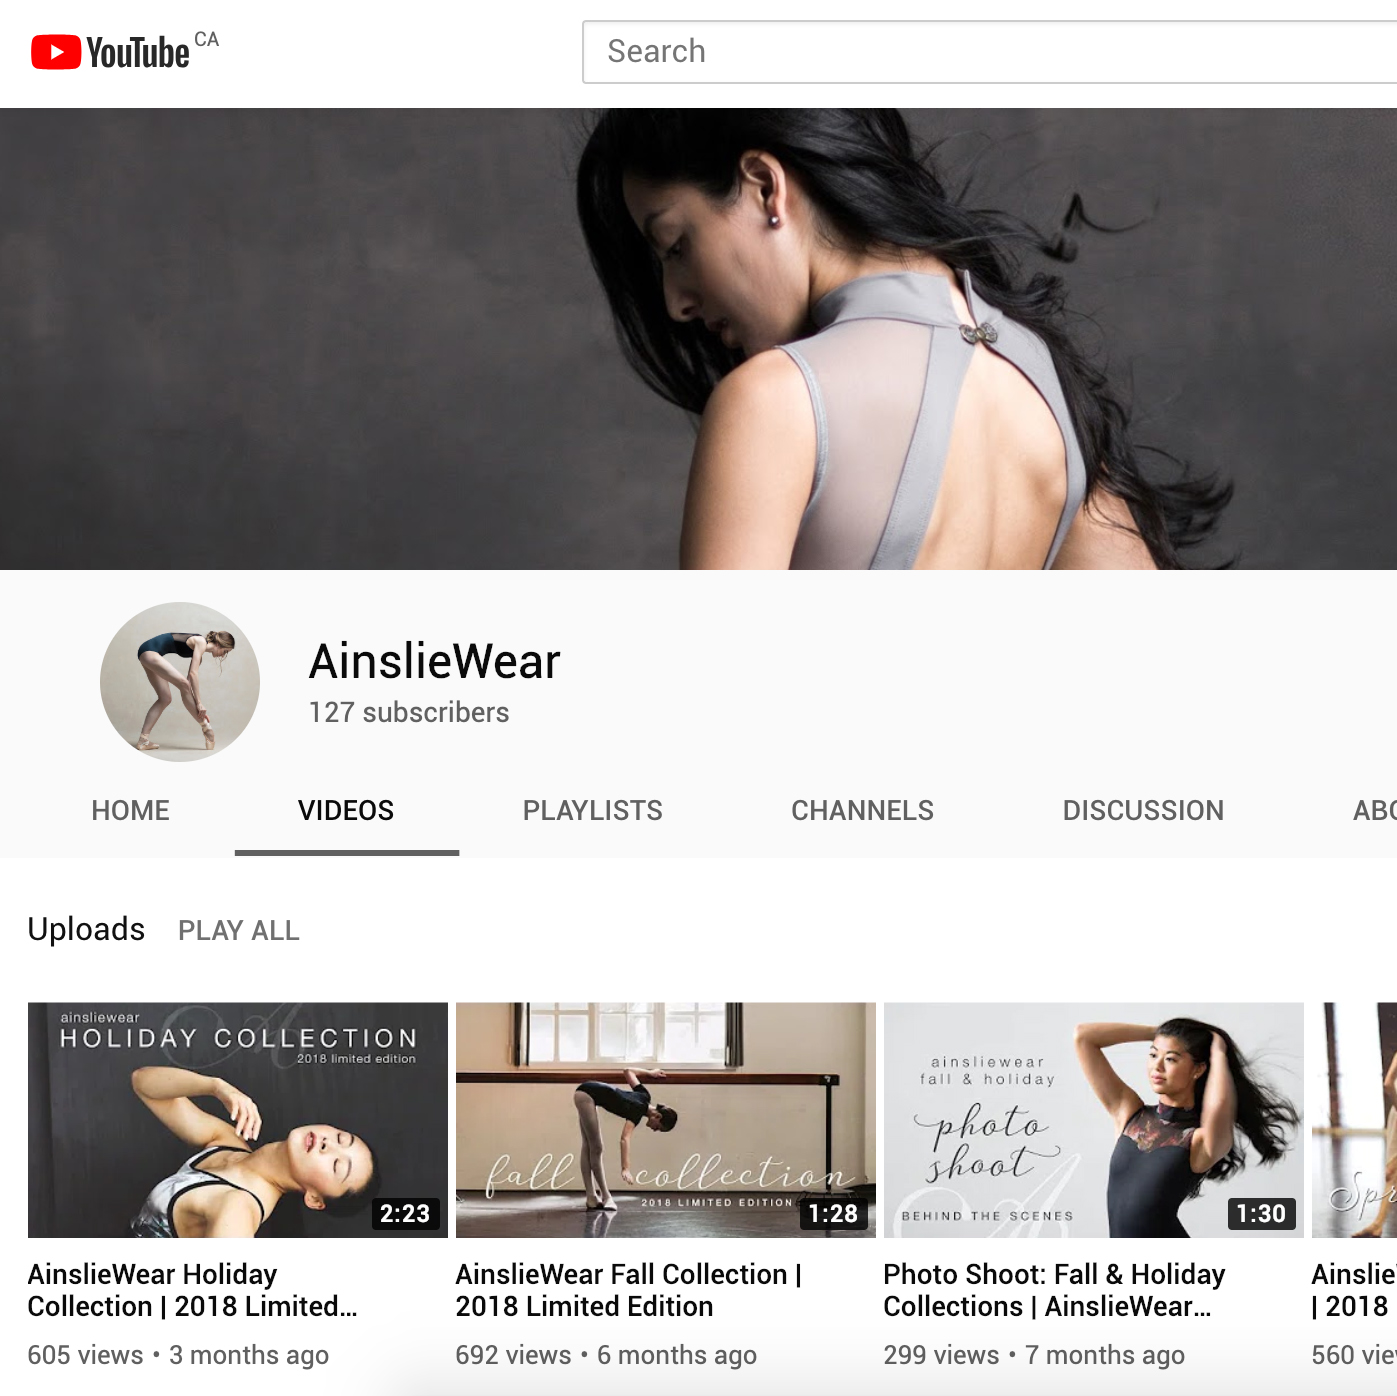 AinslieWear YouTube Channel - Video can be a powerful way to showcase your brand to prospective customers.Having run my own YouTube channel for some time, I was delighted to create something special for AinslieWear. Dance is movement and as a dancewear brand, video seemed like the perfect fit for AinslieWear.I launched AinslieWear's YouTube channel in early 2017 to better showcase their beautiful products and the people behind them. Videos featuring collaborations with aspiring and professional dancers, collection sneak peeks, and photo shoot behind the scenes, have assisted in sharing the AinslieWear brand with a wider audience.